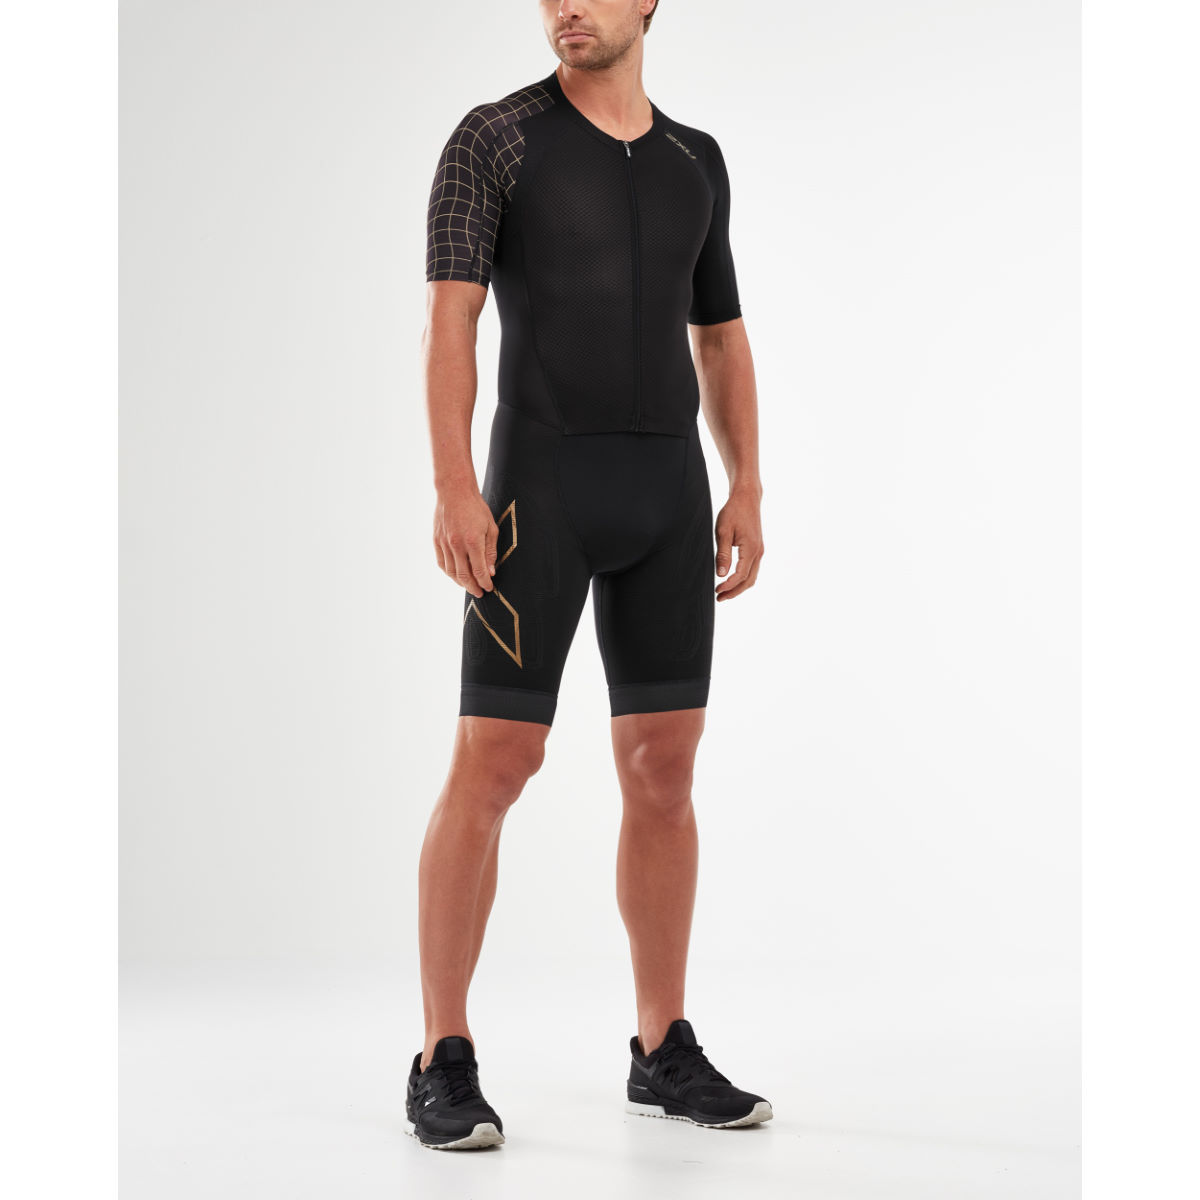 2xu Comp Full Zip Sleeved Trisuit - Extra Extra Large Black/gold